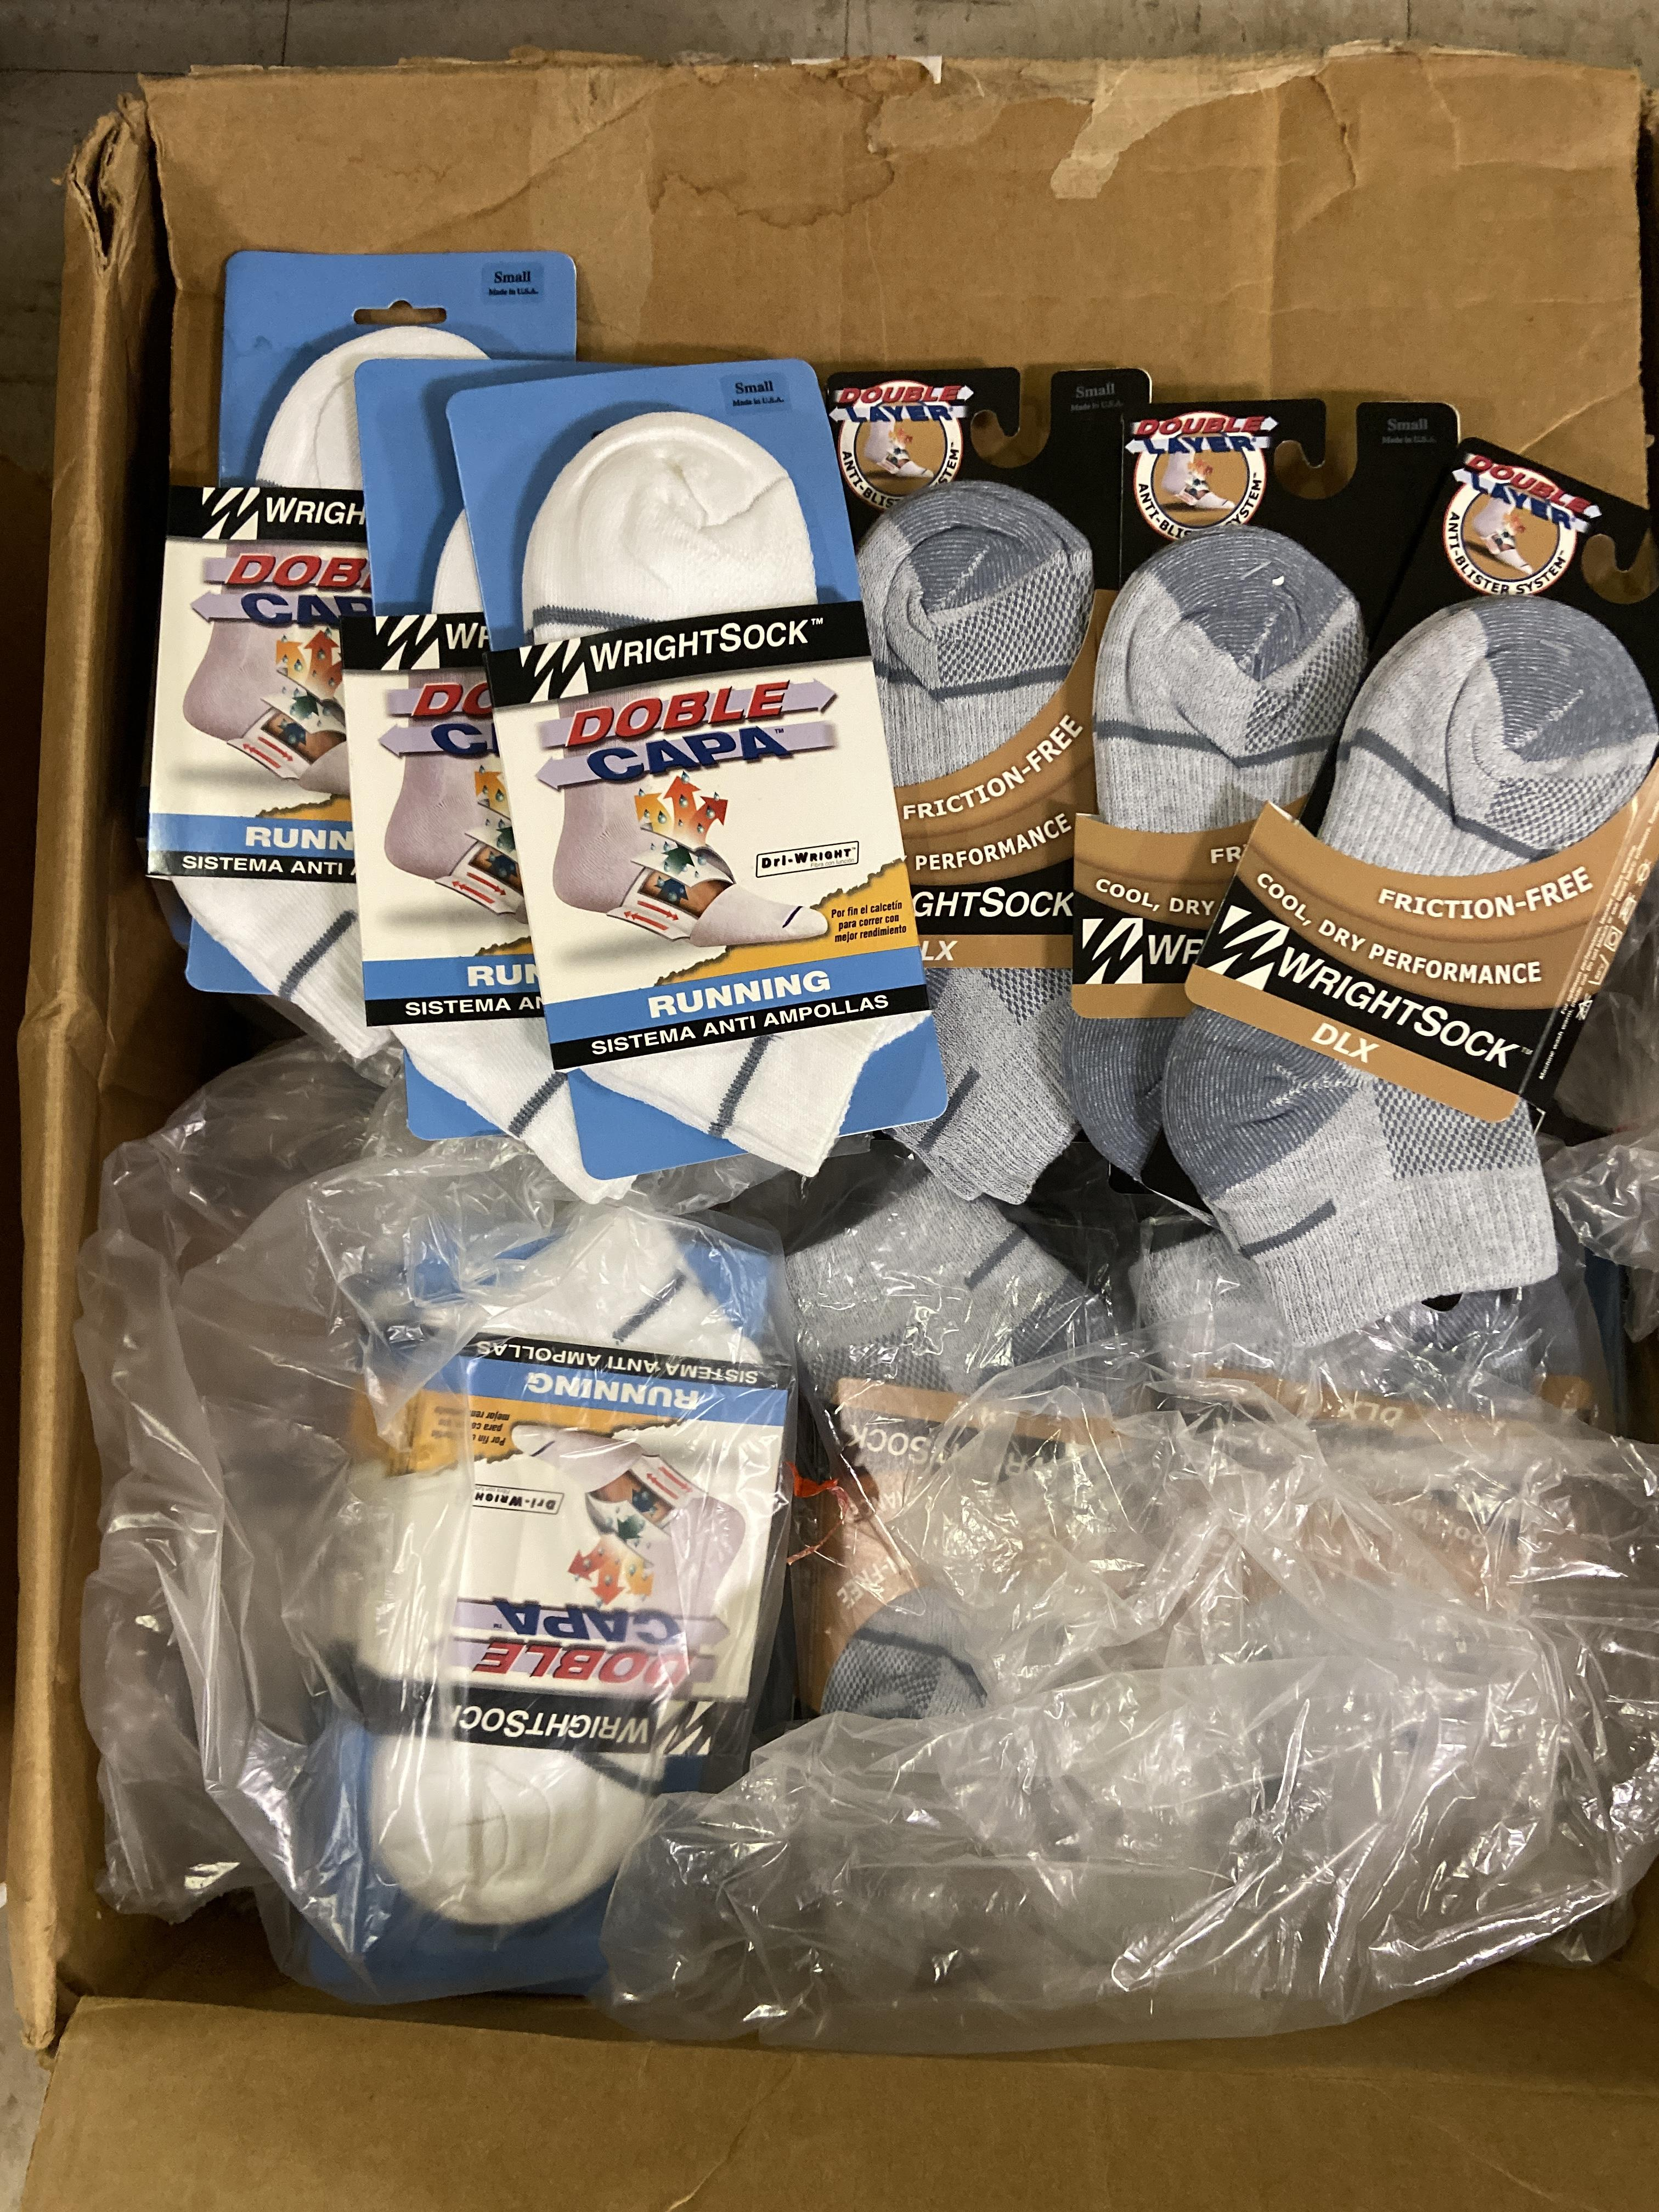 Lot 30 - 250+ packs of New Socks, Wrightsocks Running and DLX, Double Layer, White and Gray Lot includes